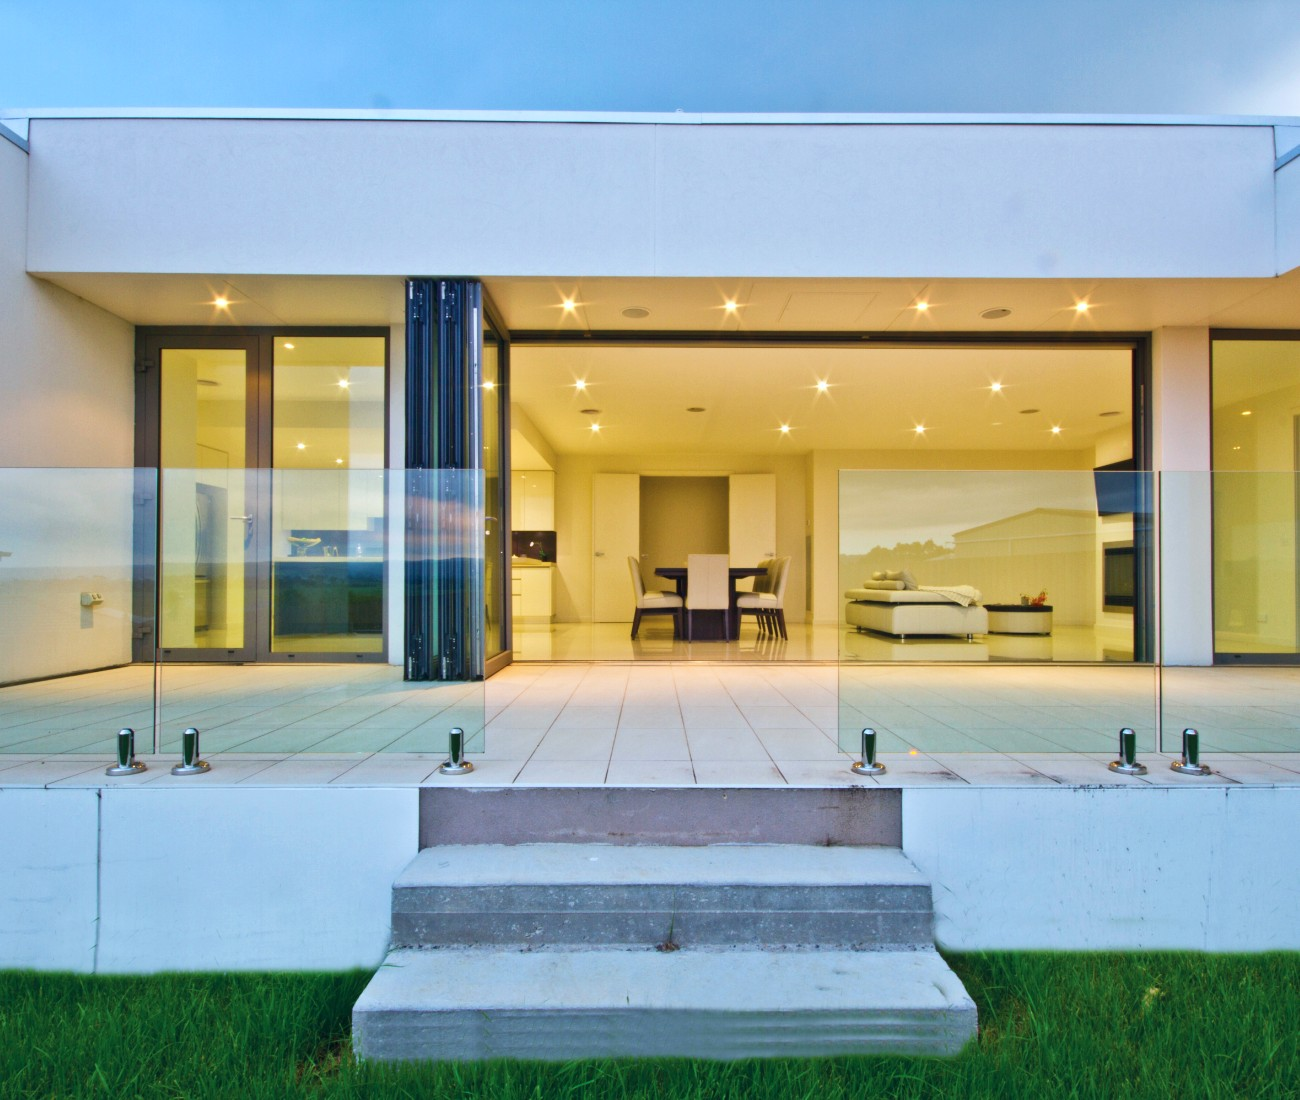 Courtesy of Tiltco Architectural.